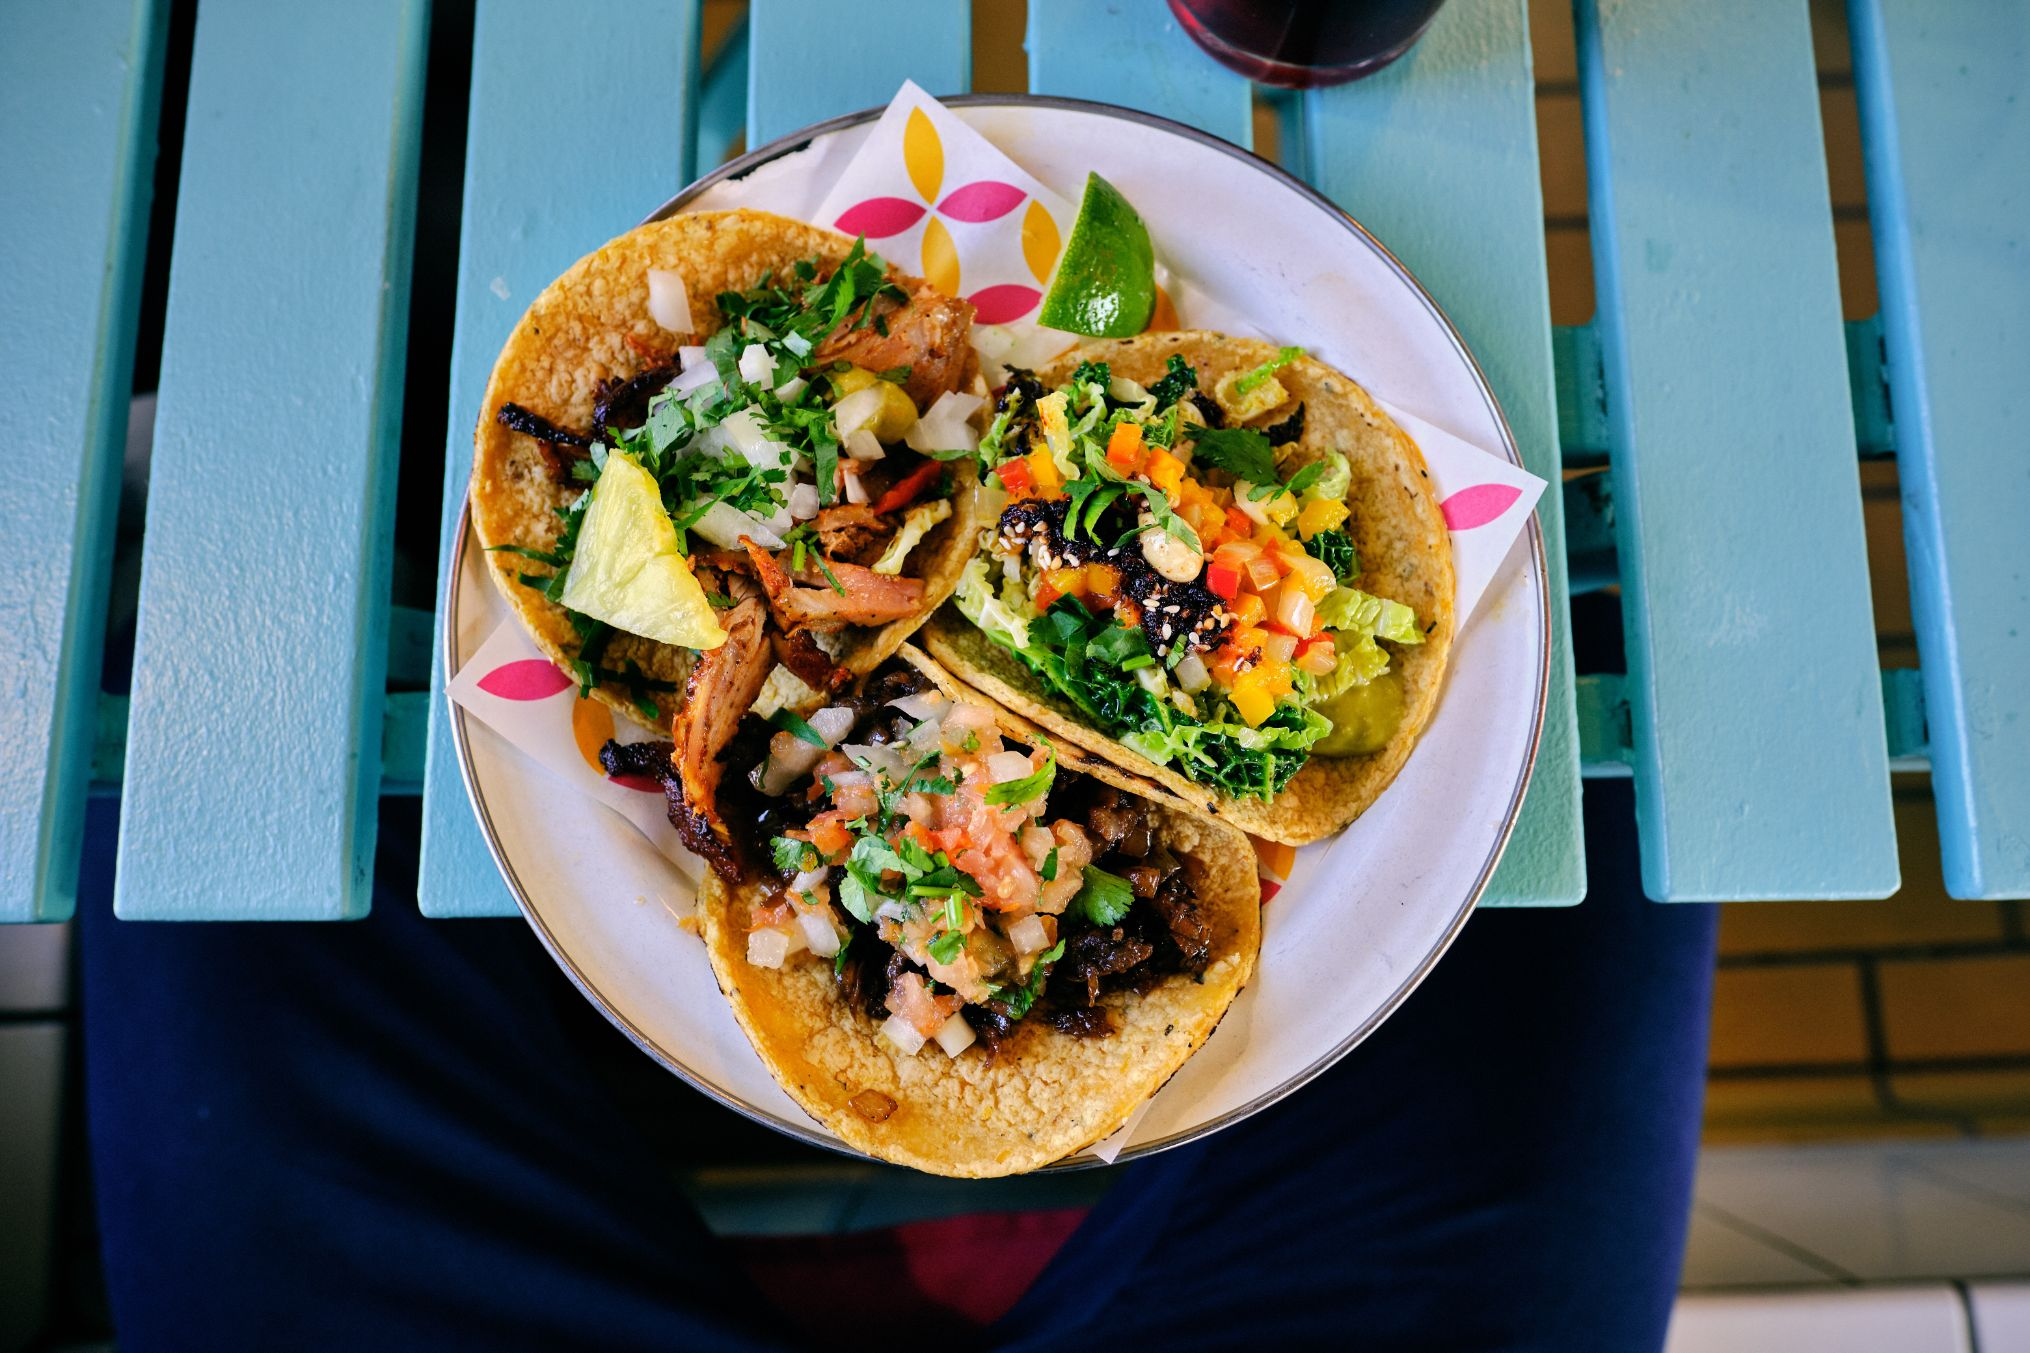 plate of three tacos on a blue table